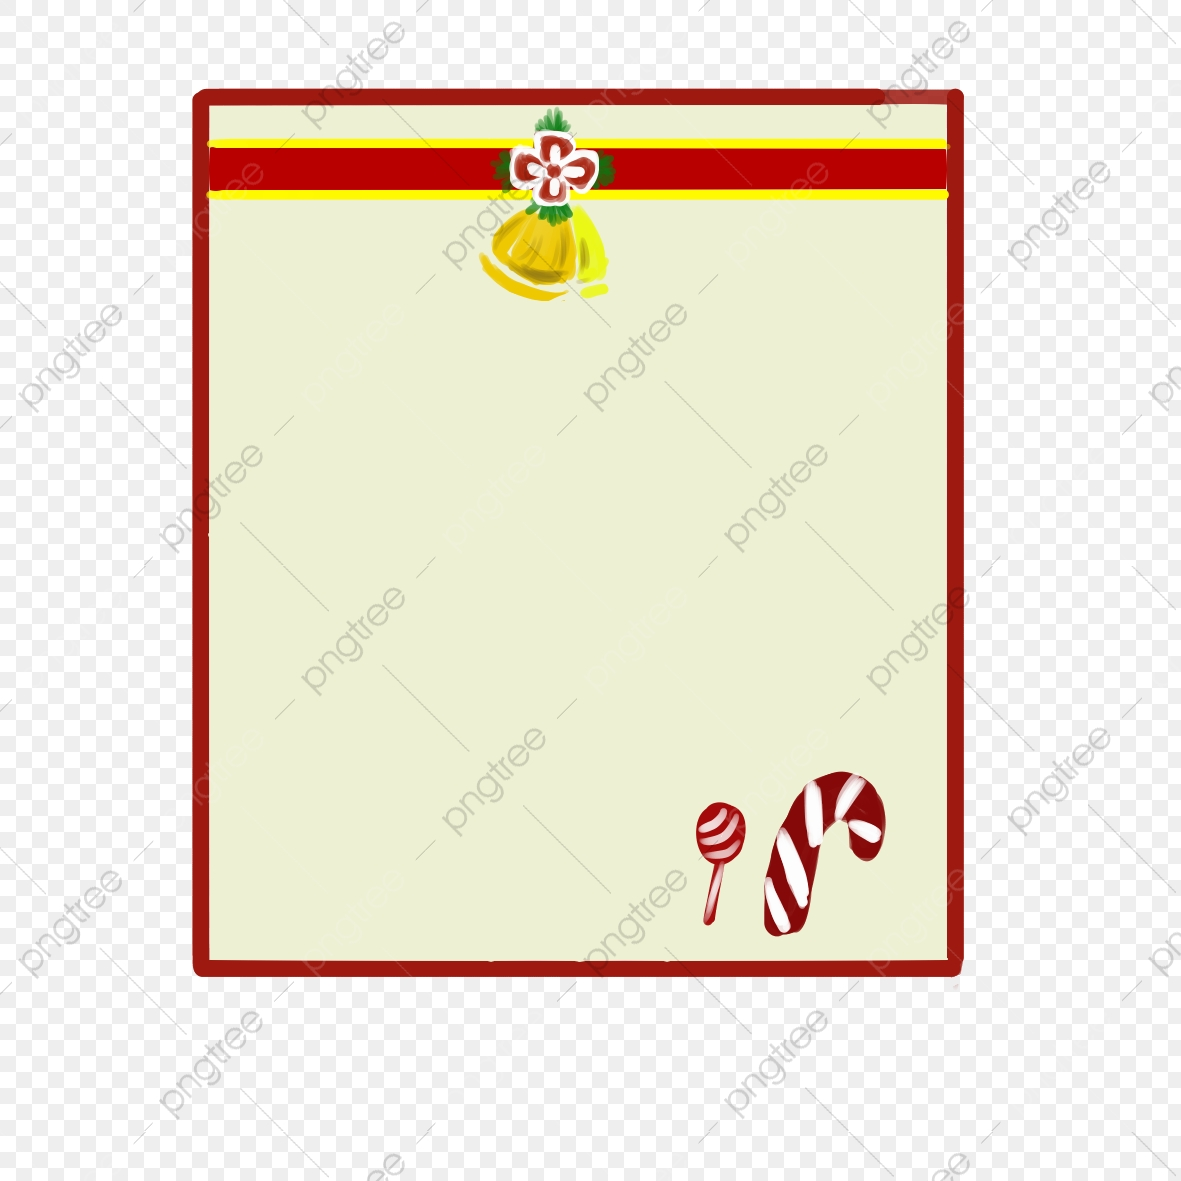 hight resolution of commercial use resource upgrade to premium plan and get license authorization upgradenow christmas bell christmas cane christmas candy red border